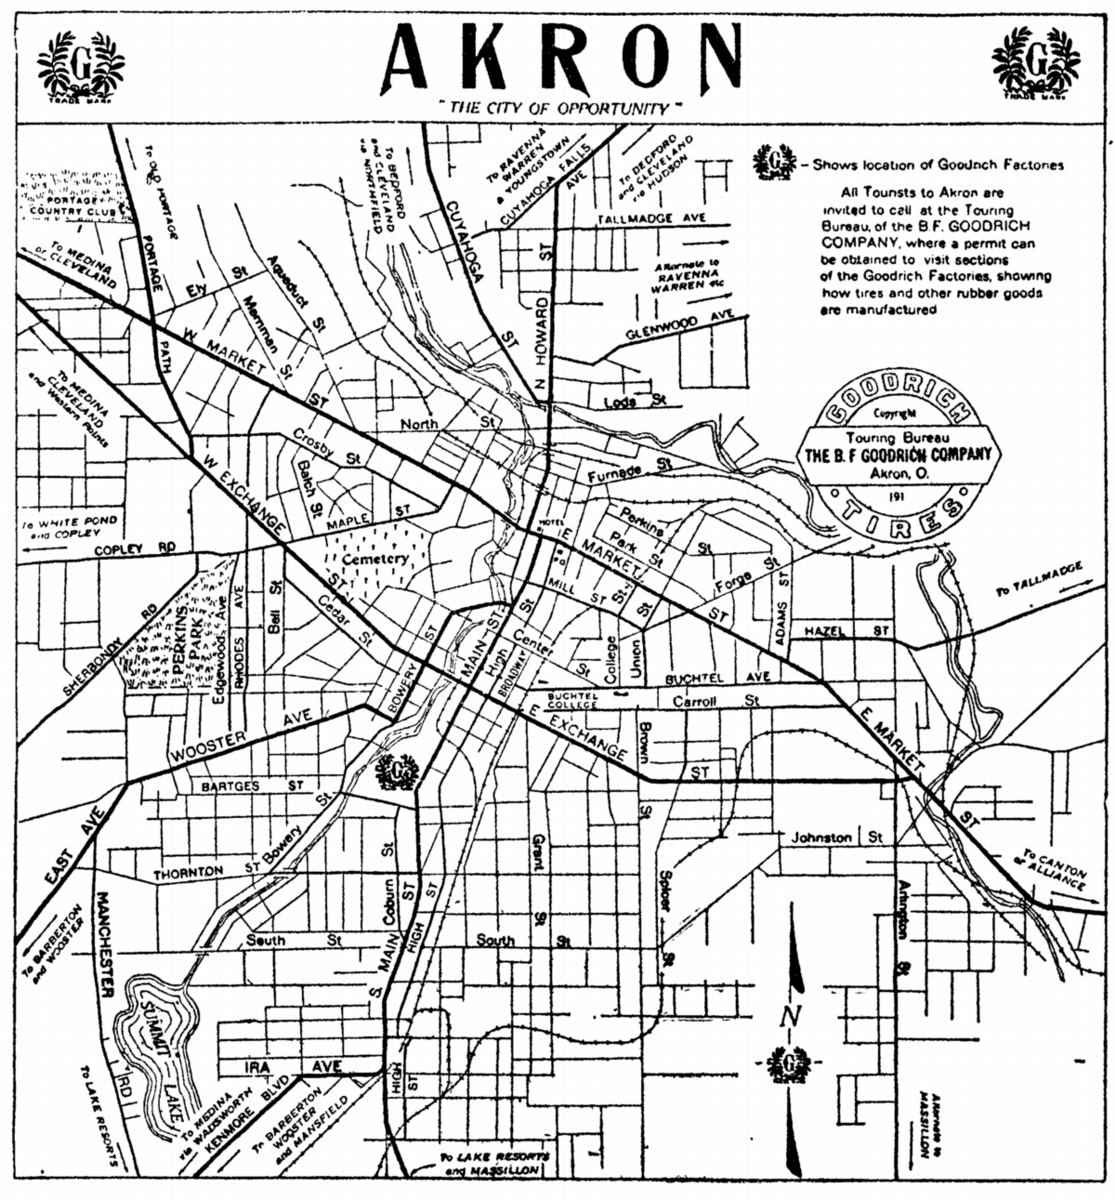 Ohio City Maps At AmericanRoadsus - Akron on us map